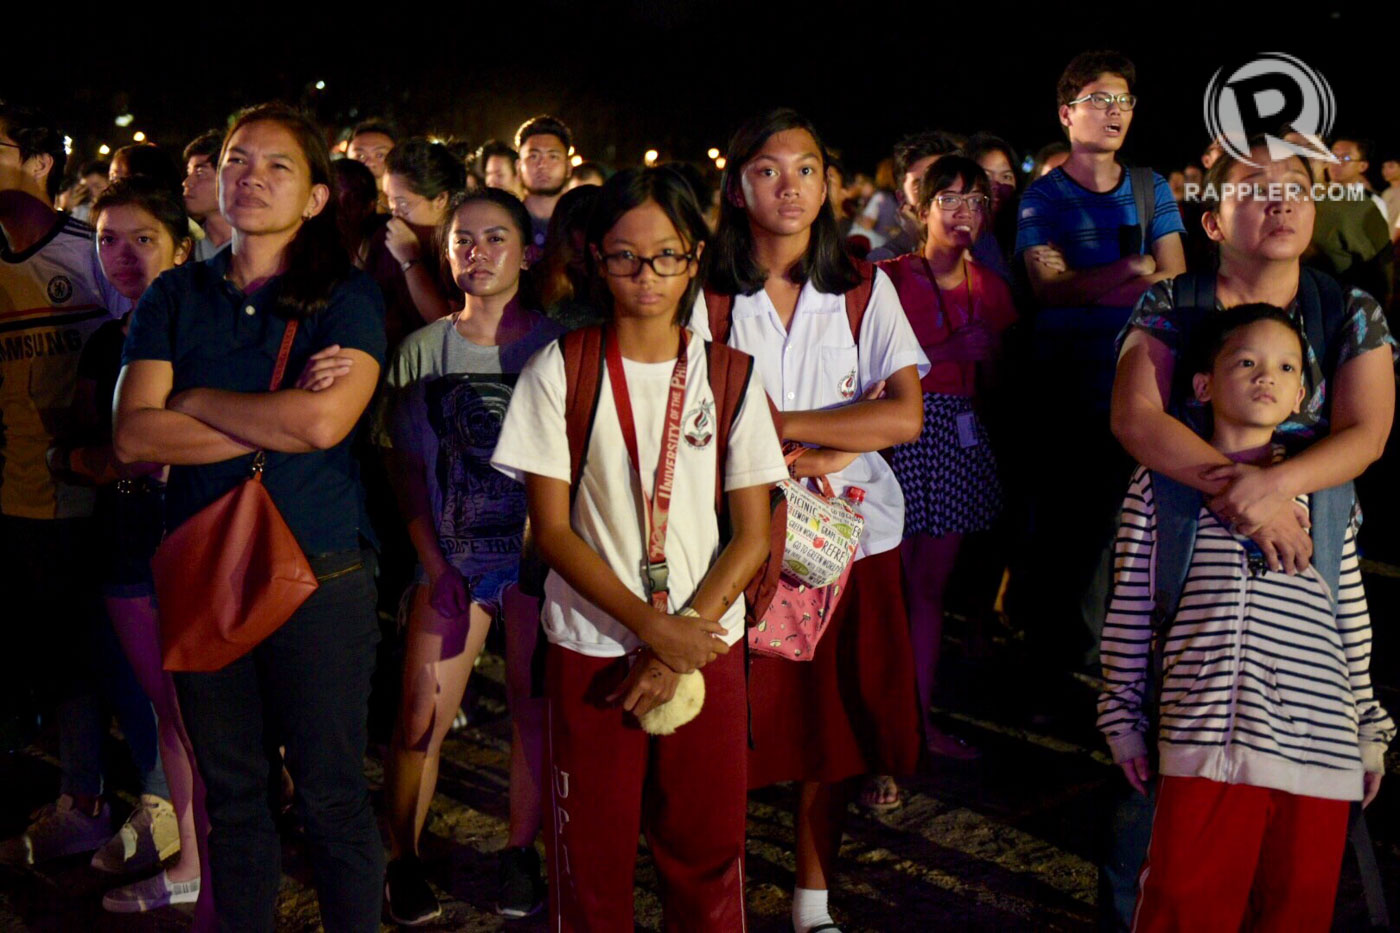 TENSED. The cardiac match gets many UP supporters all anxious at the Sunken Garden in UP Diliman. Photo by Leanne Jazul/Rappler